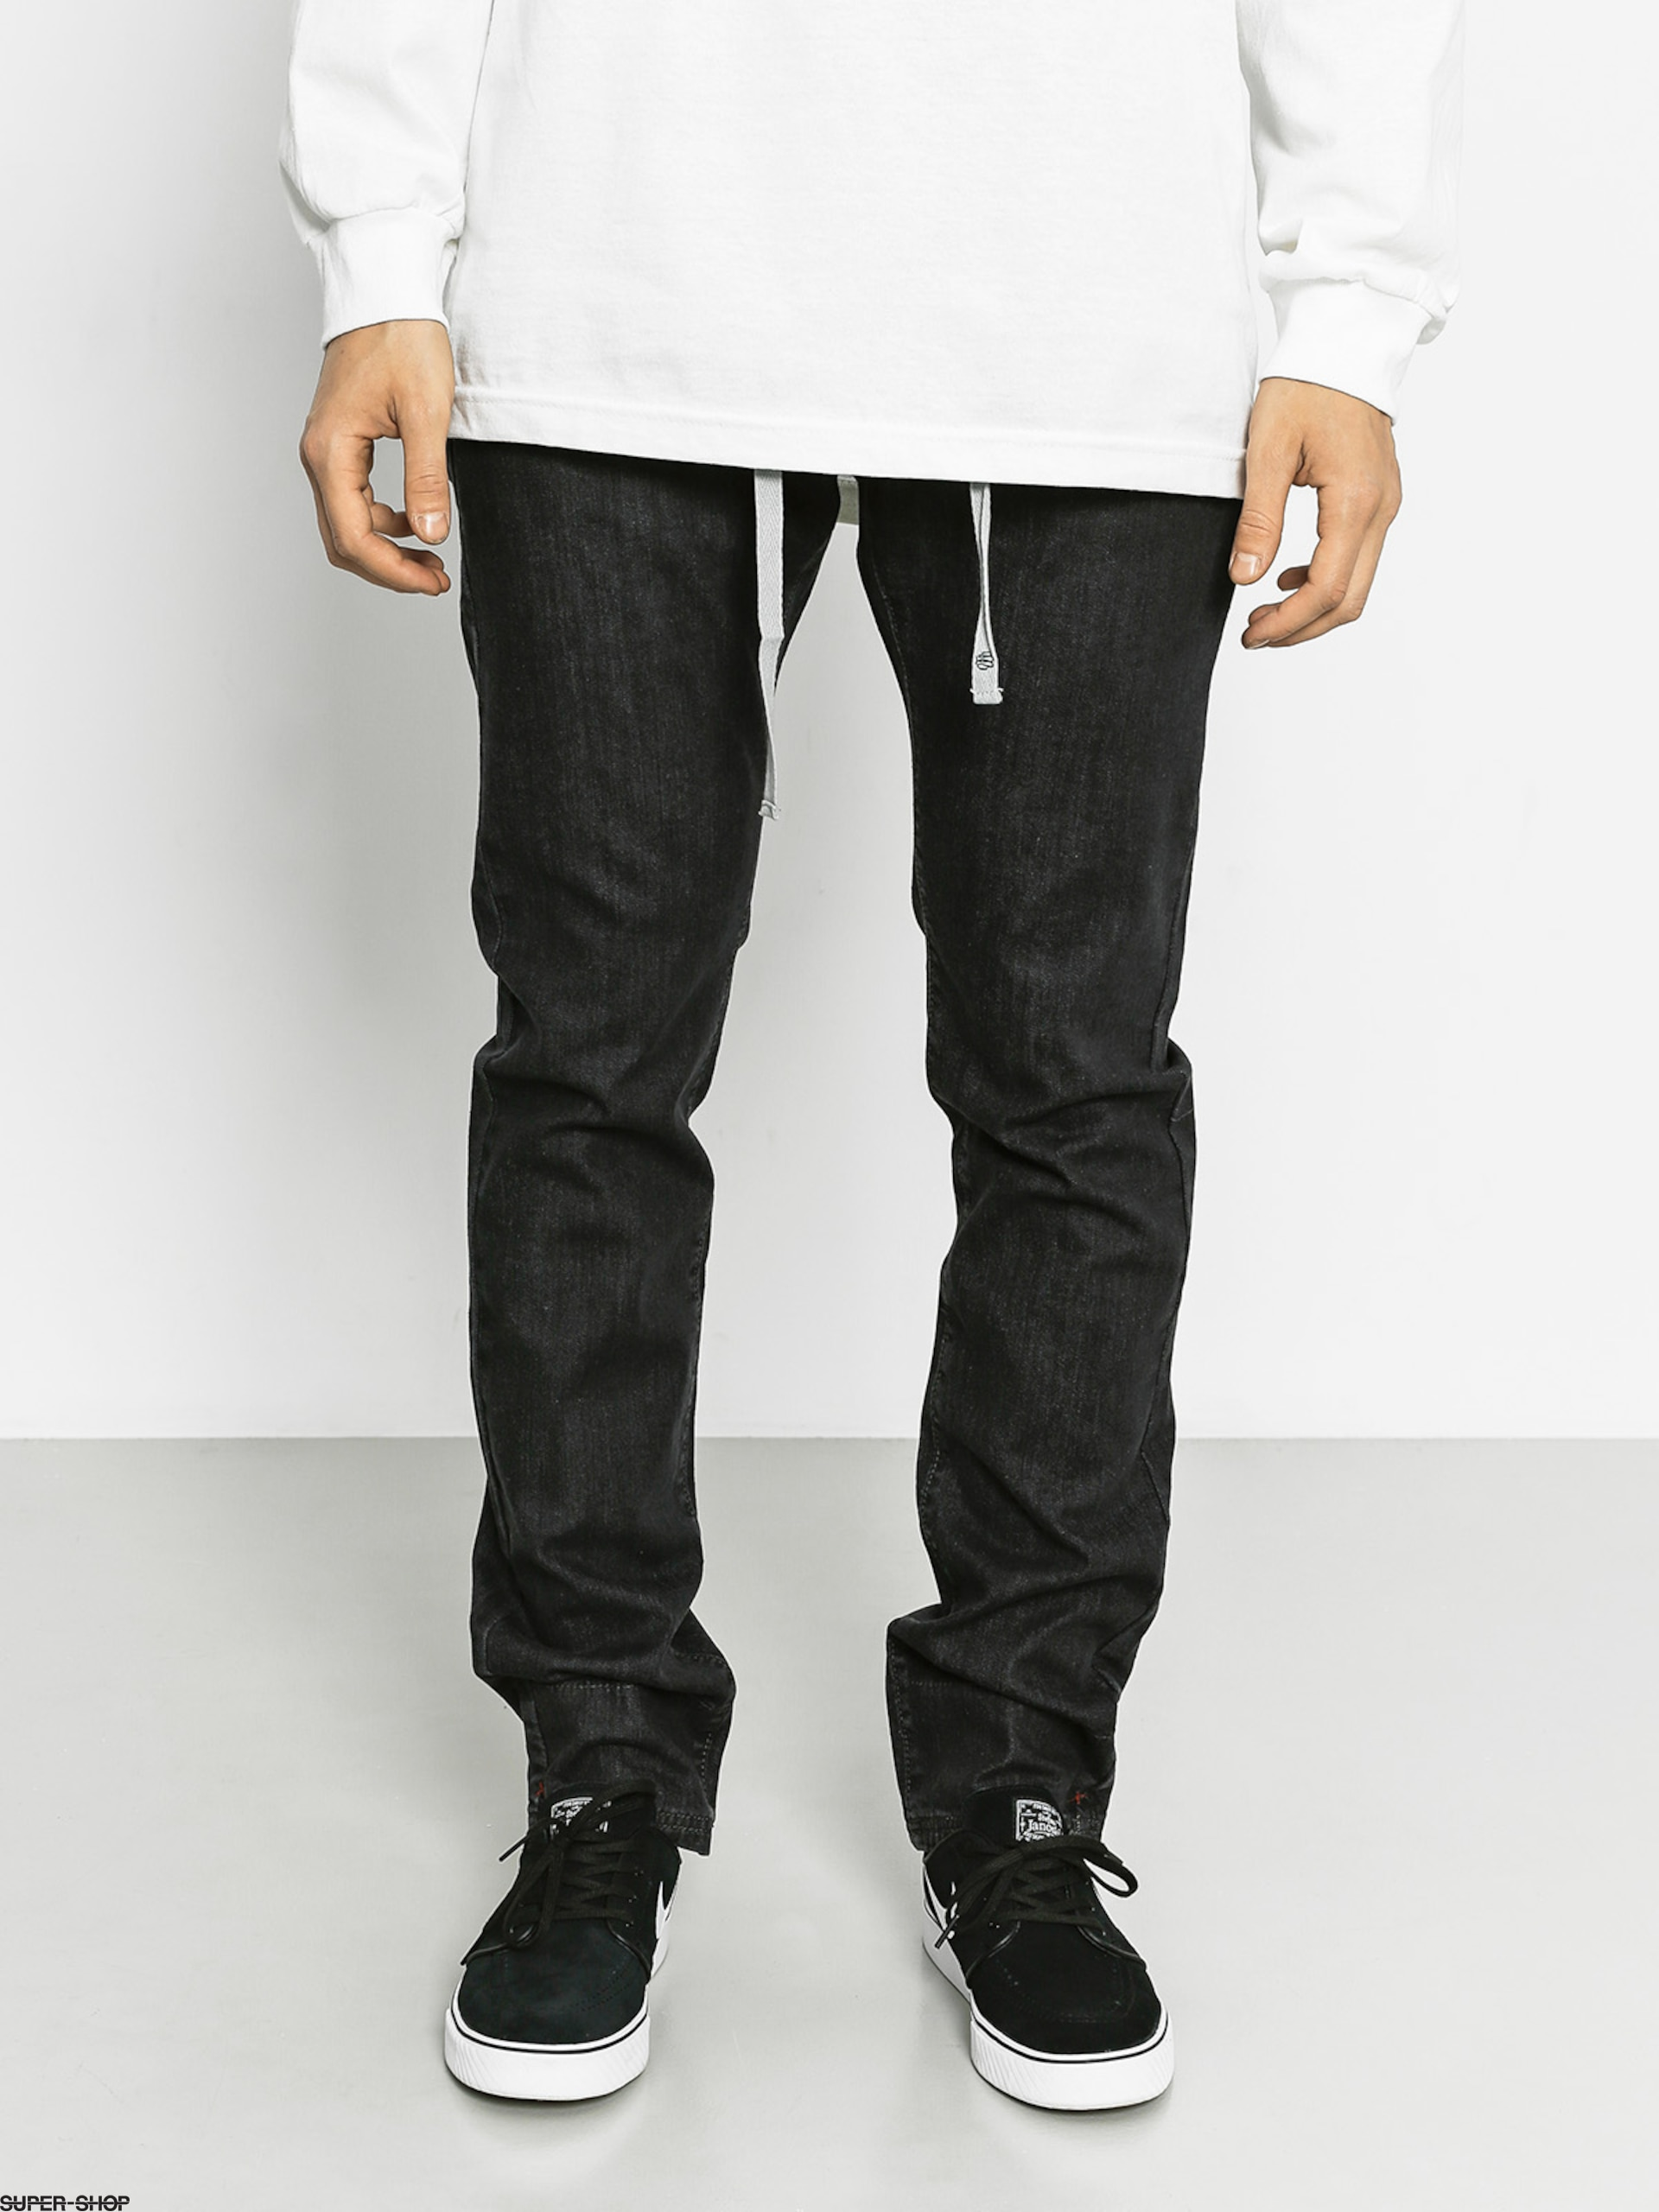 Malita Pants Butcher 2 (black)